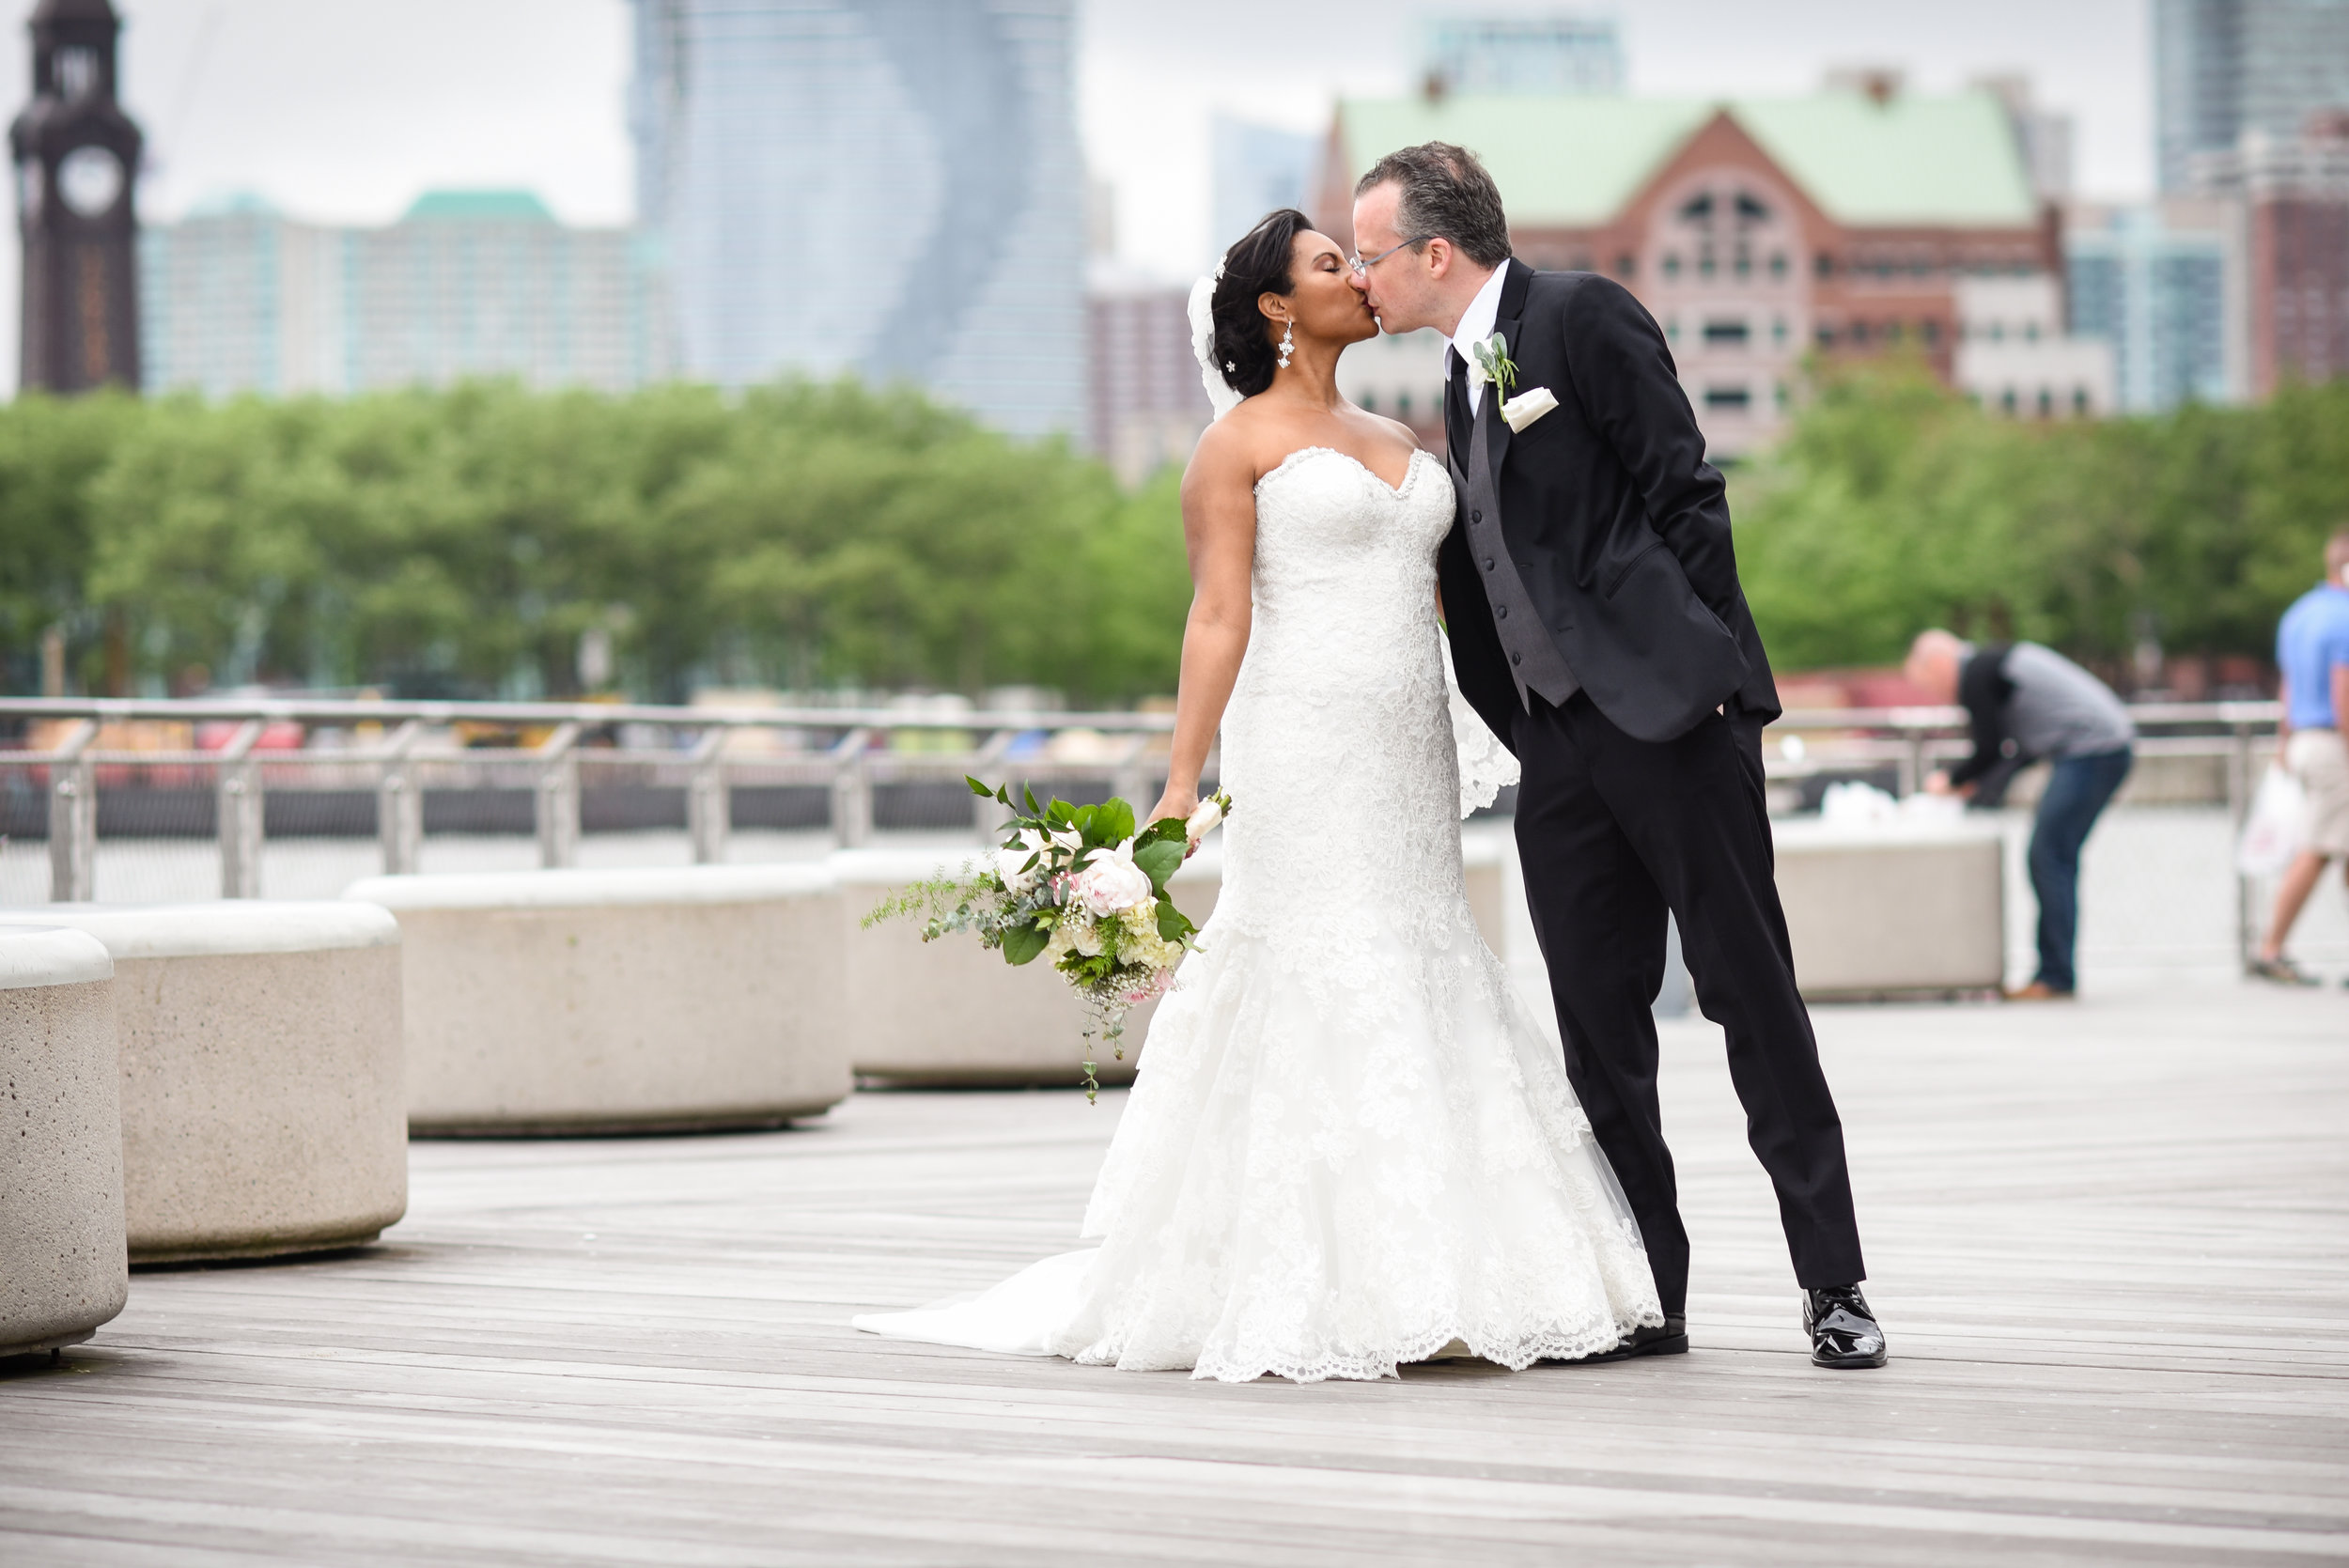 Our wedding day was so special..especially kissing on the Hoboken waterfront!